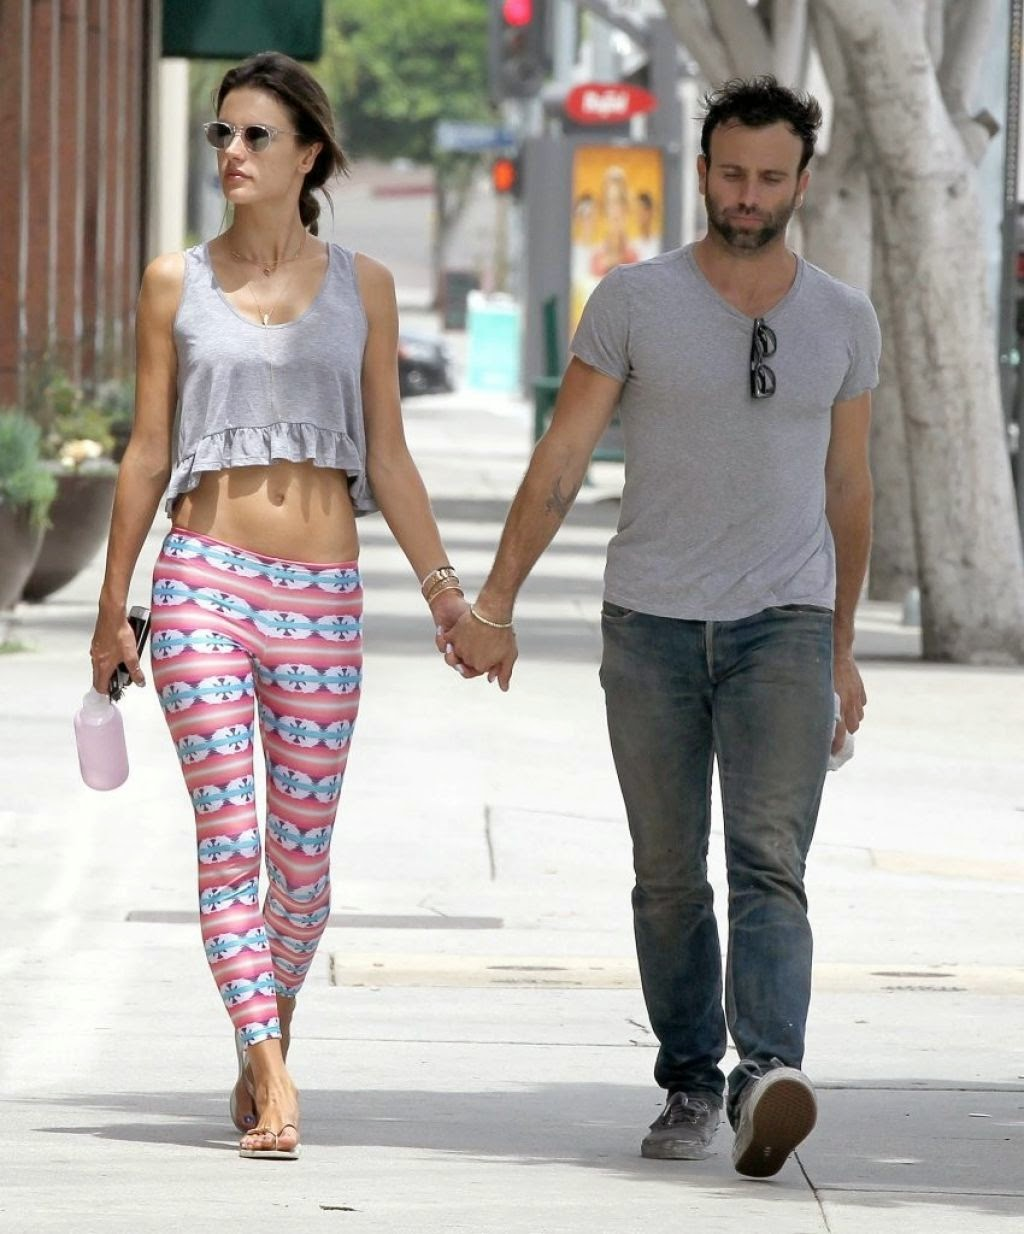 Alessandra Ambrosio is pretty in printed tights and cropped top out and about in Brentwood